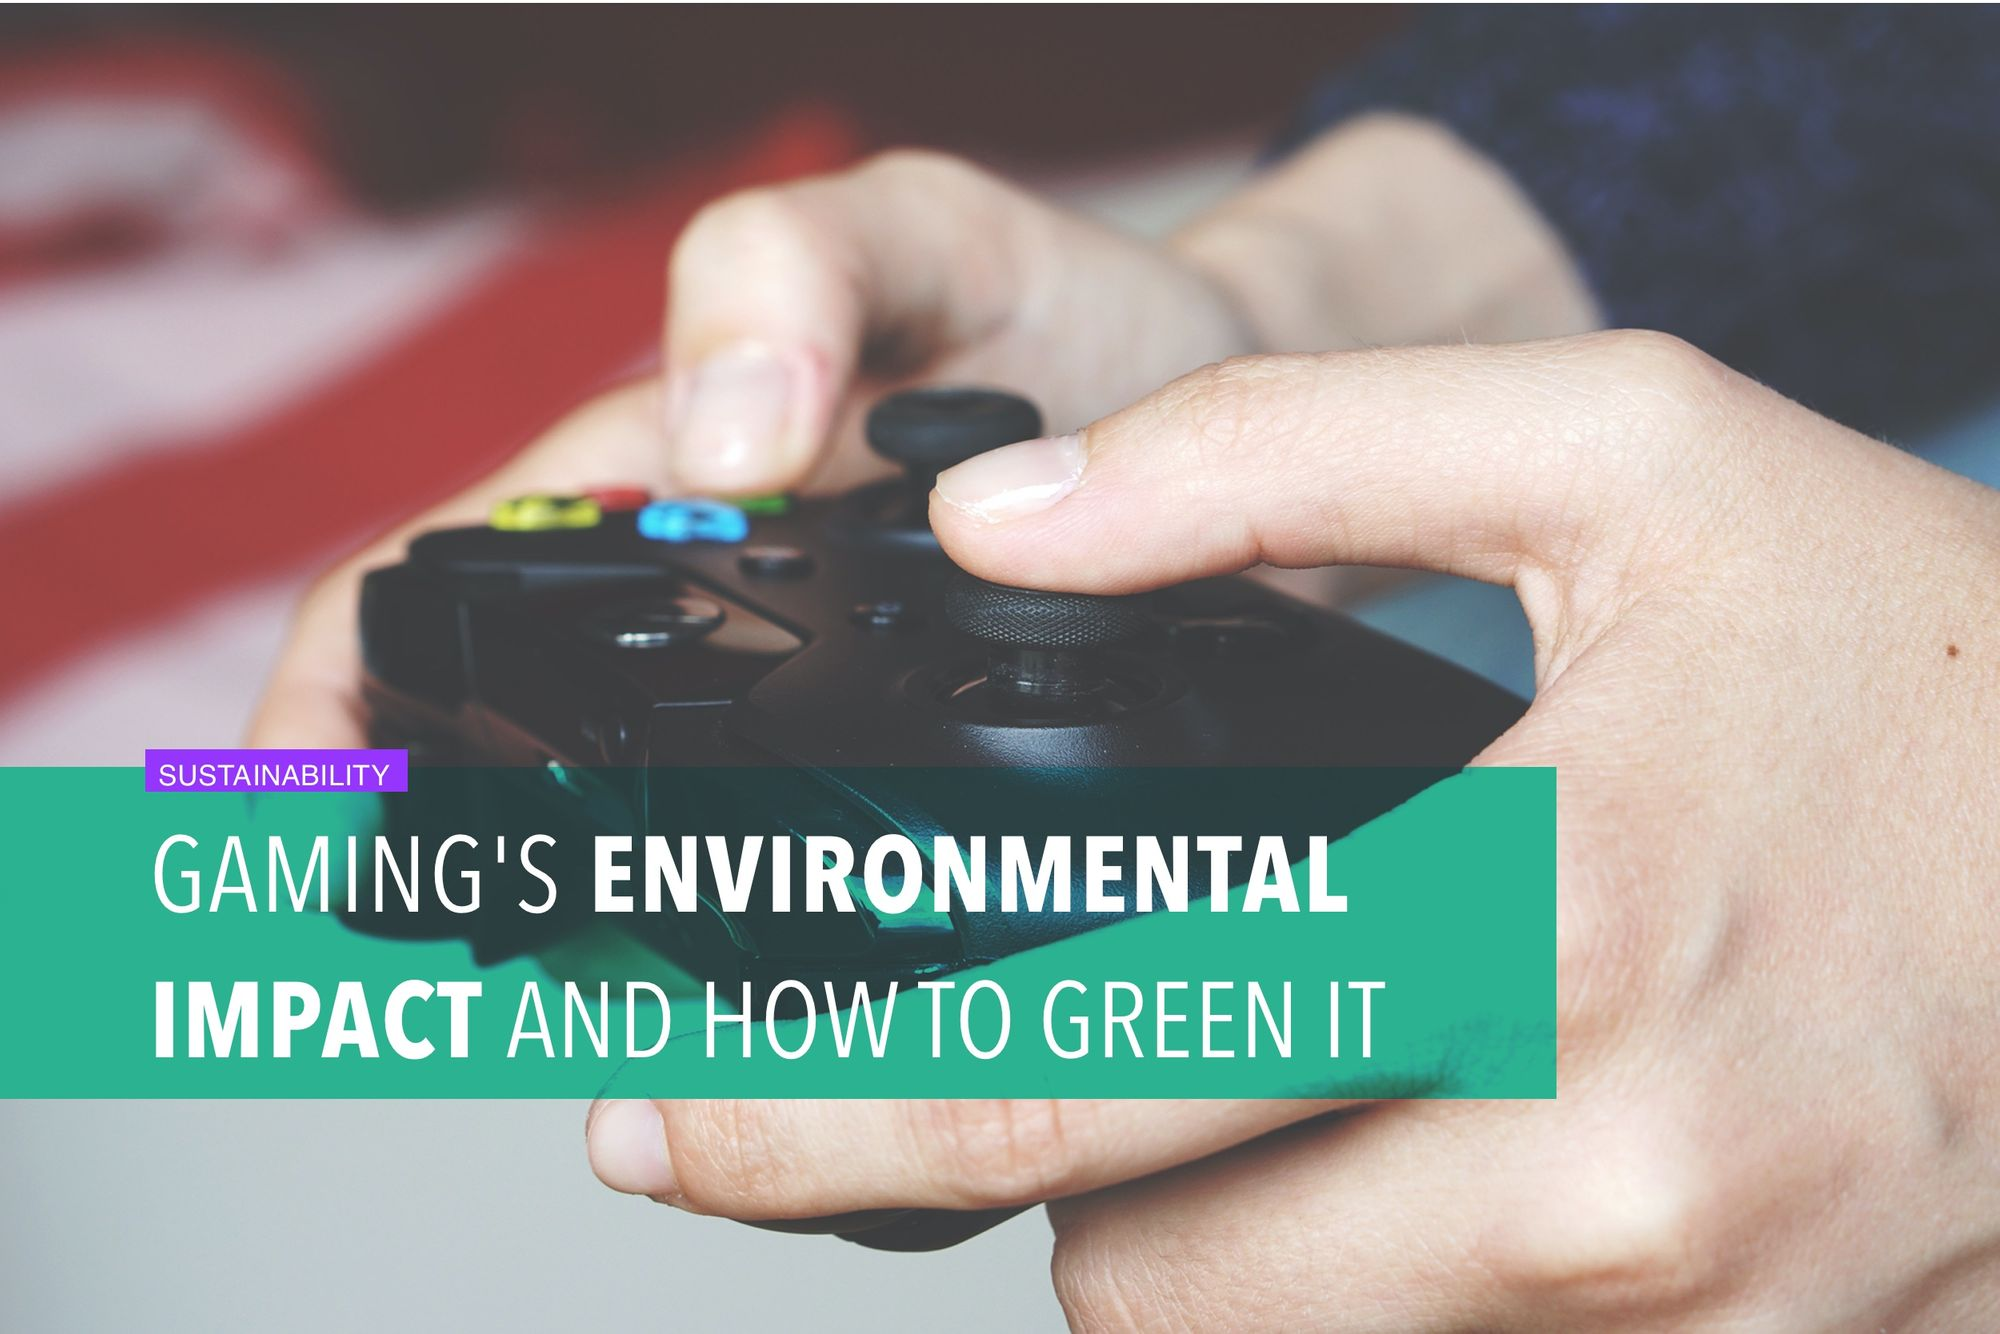 Gaming's environmental impact and how to green it